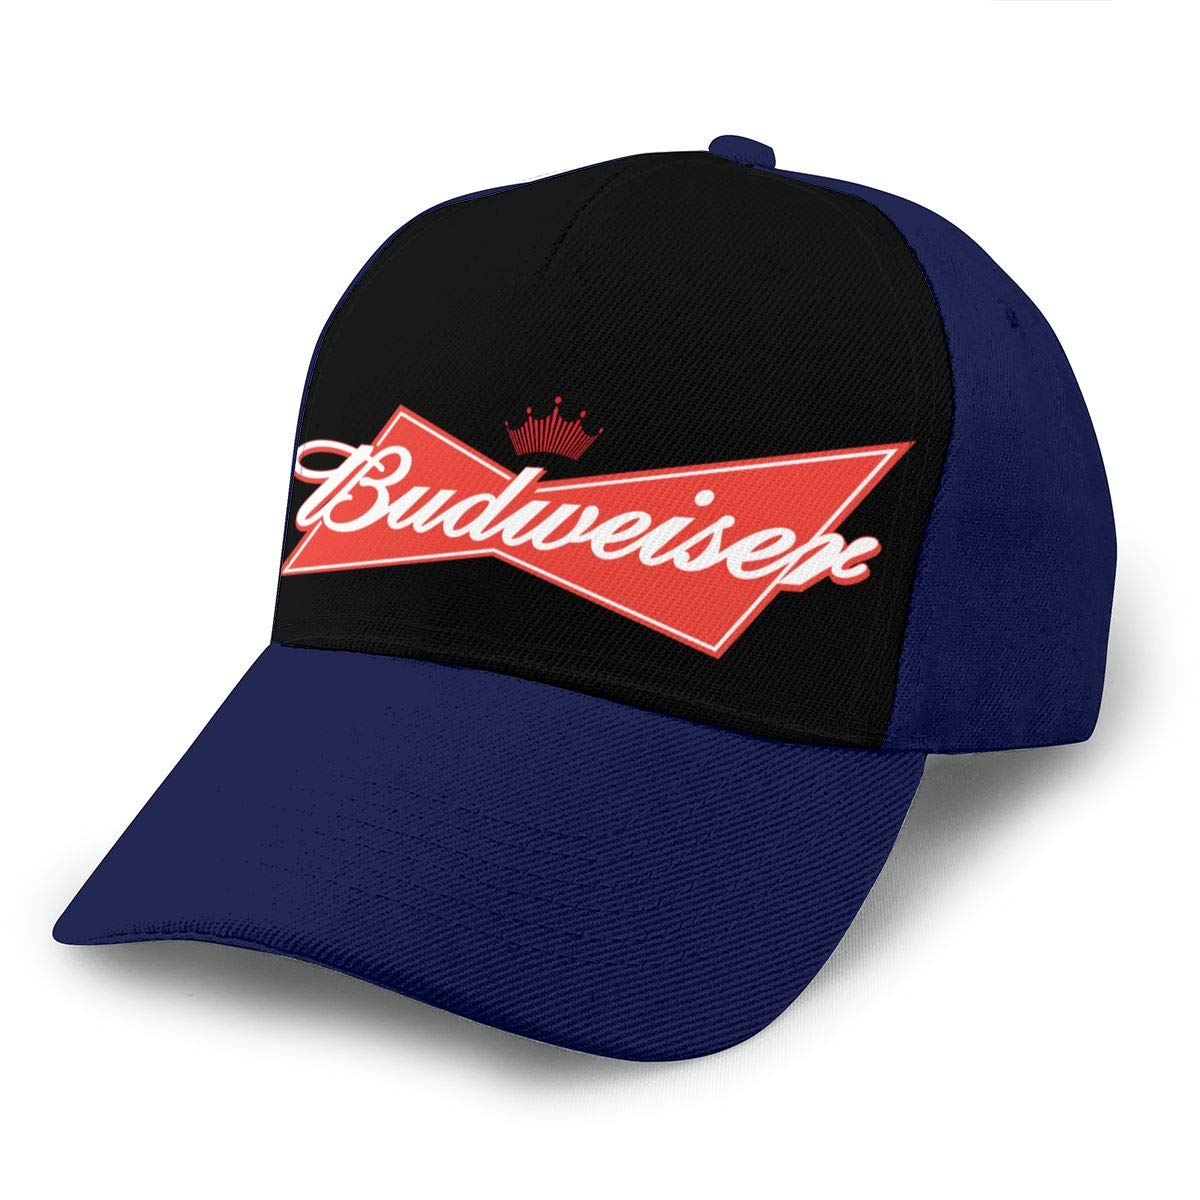 Adjustable Women Men Budweiser-Logo Print Baseball Cap Flat Brim Cap Hats Hip Hop Snapback Sun Hat Boys Girls Navy by Apolonia